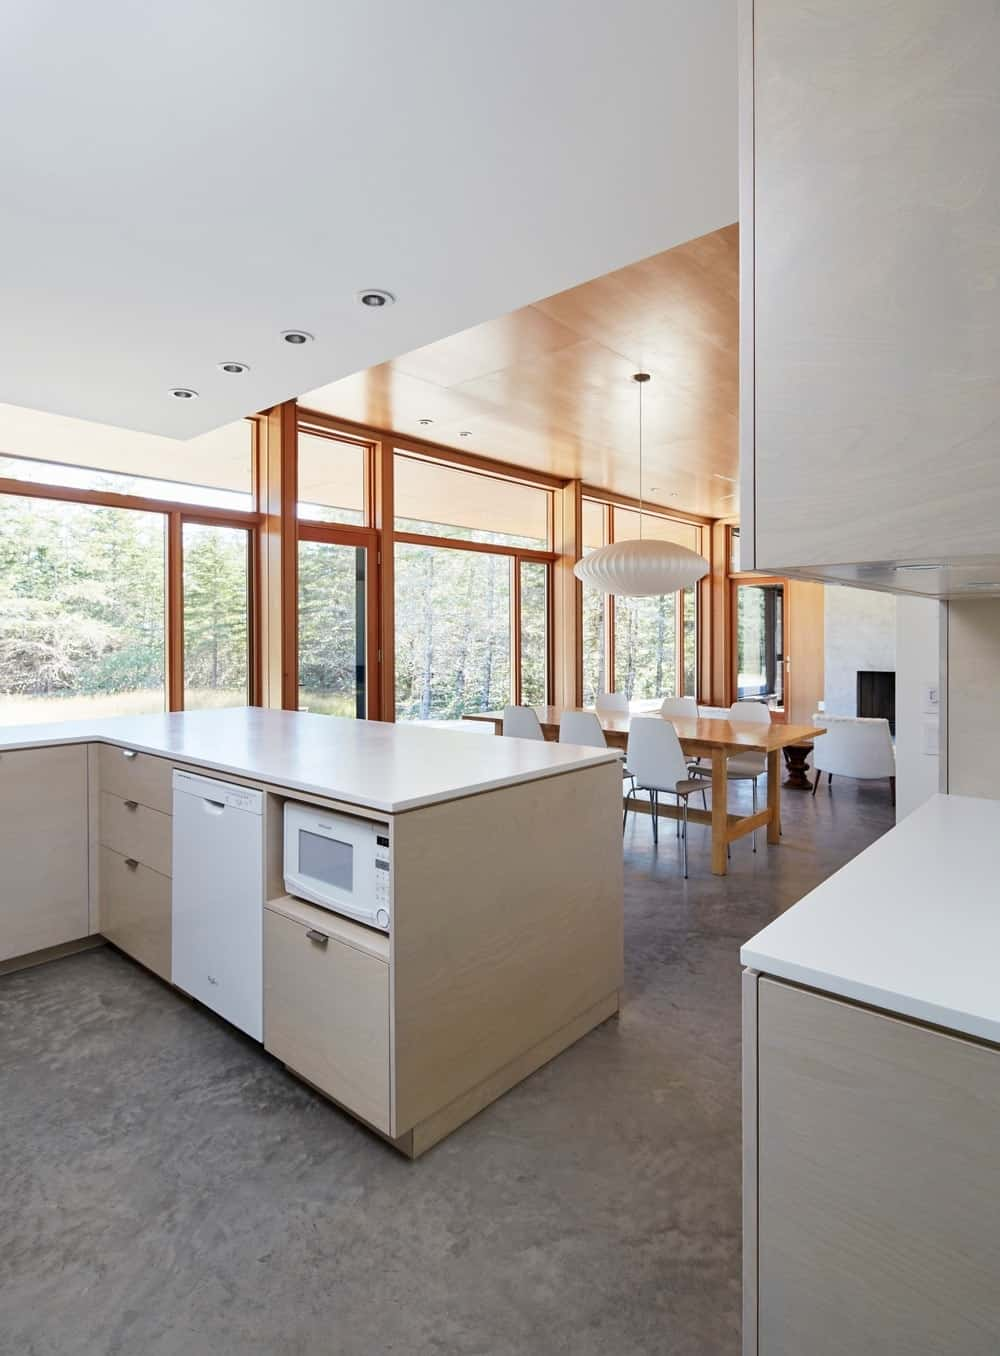 A dine-in kitchen offers white appliances fitted along the light wood cabinetry. It has concrete flooring and panoramic windows overlooking an enchanting forest view.